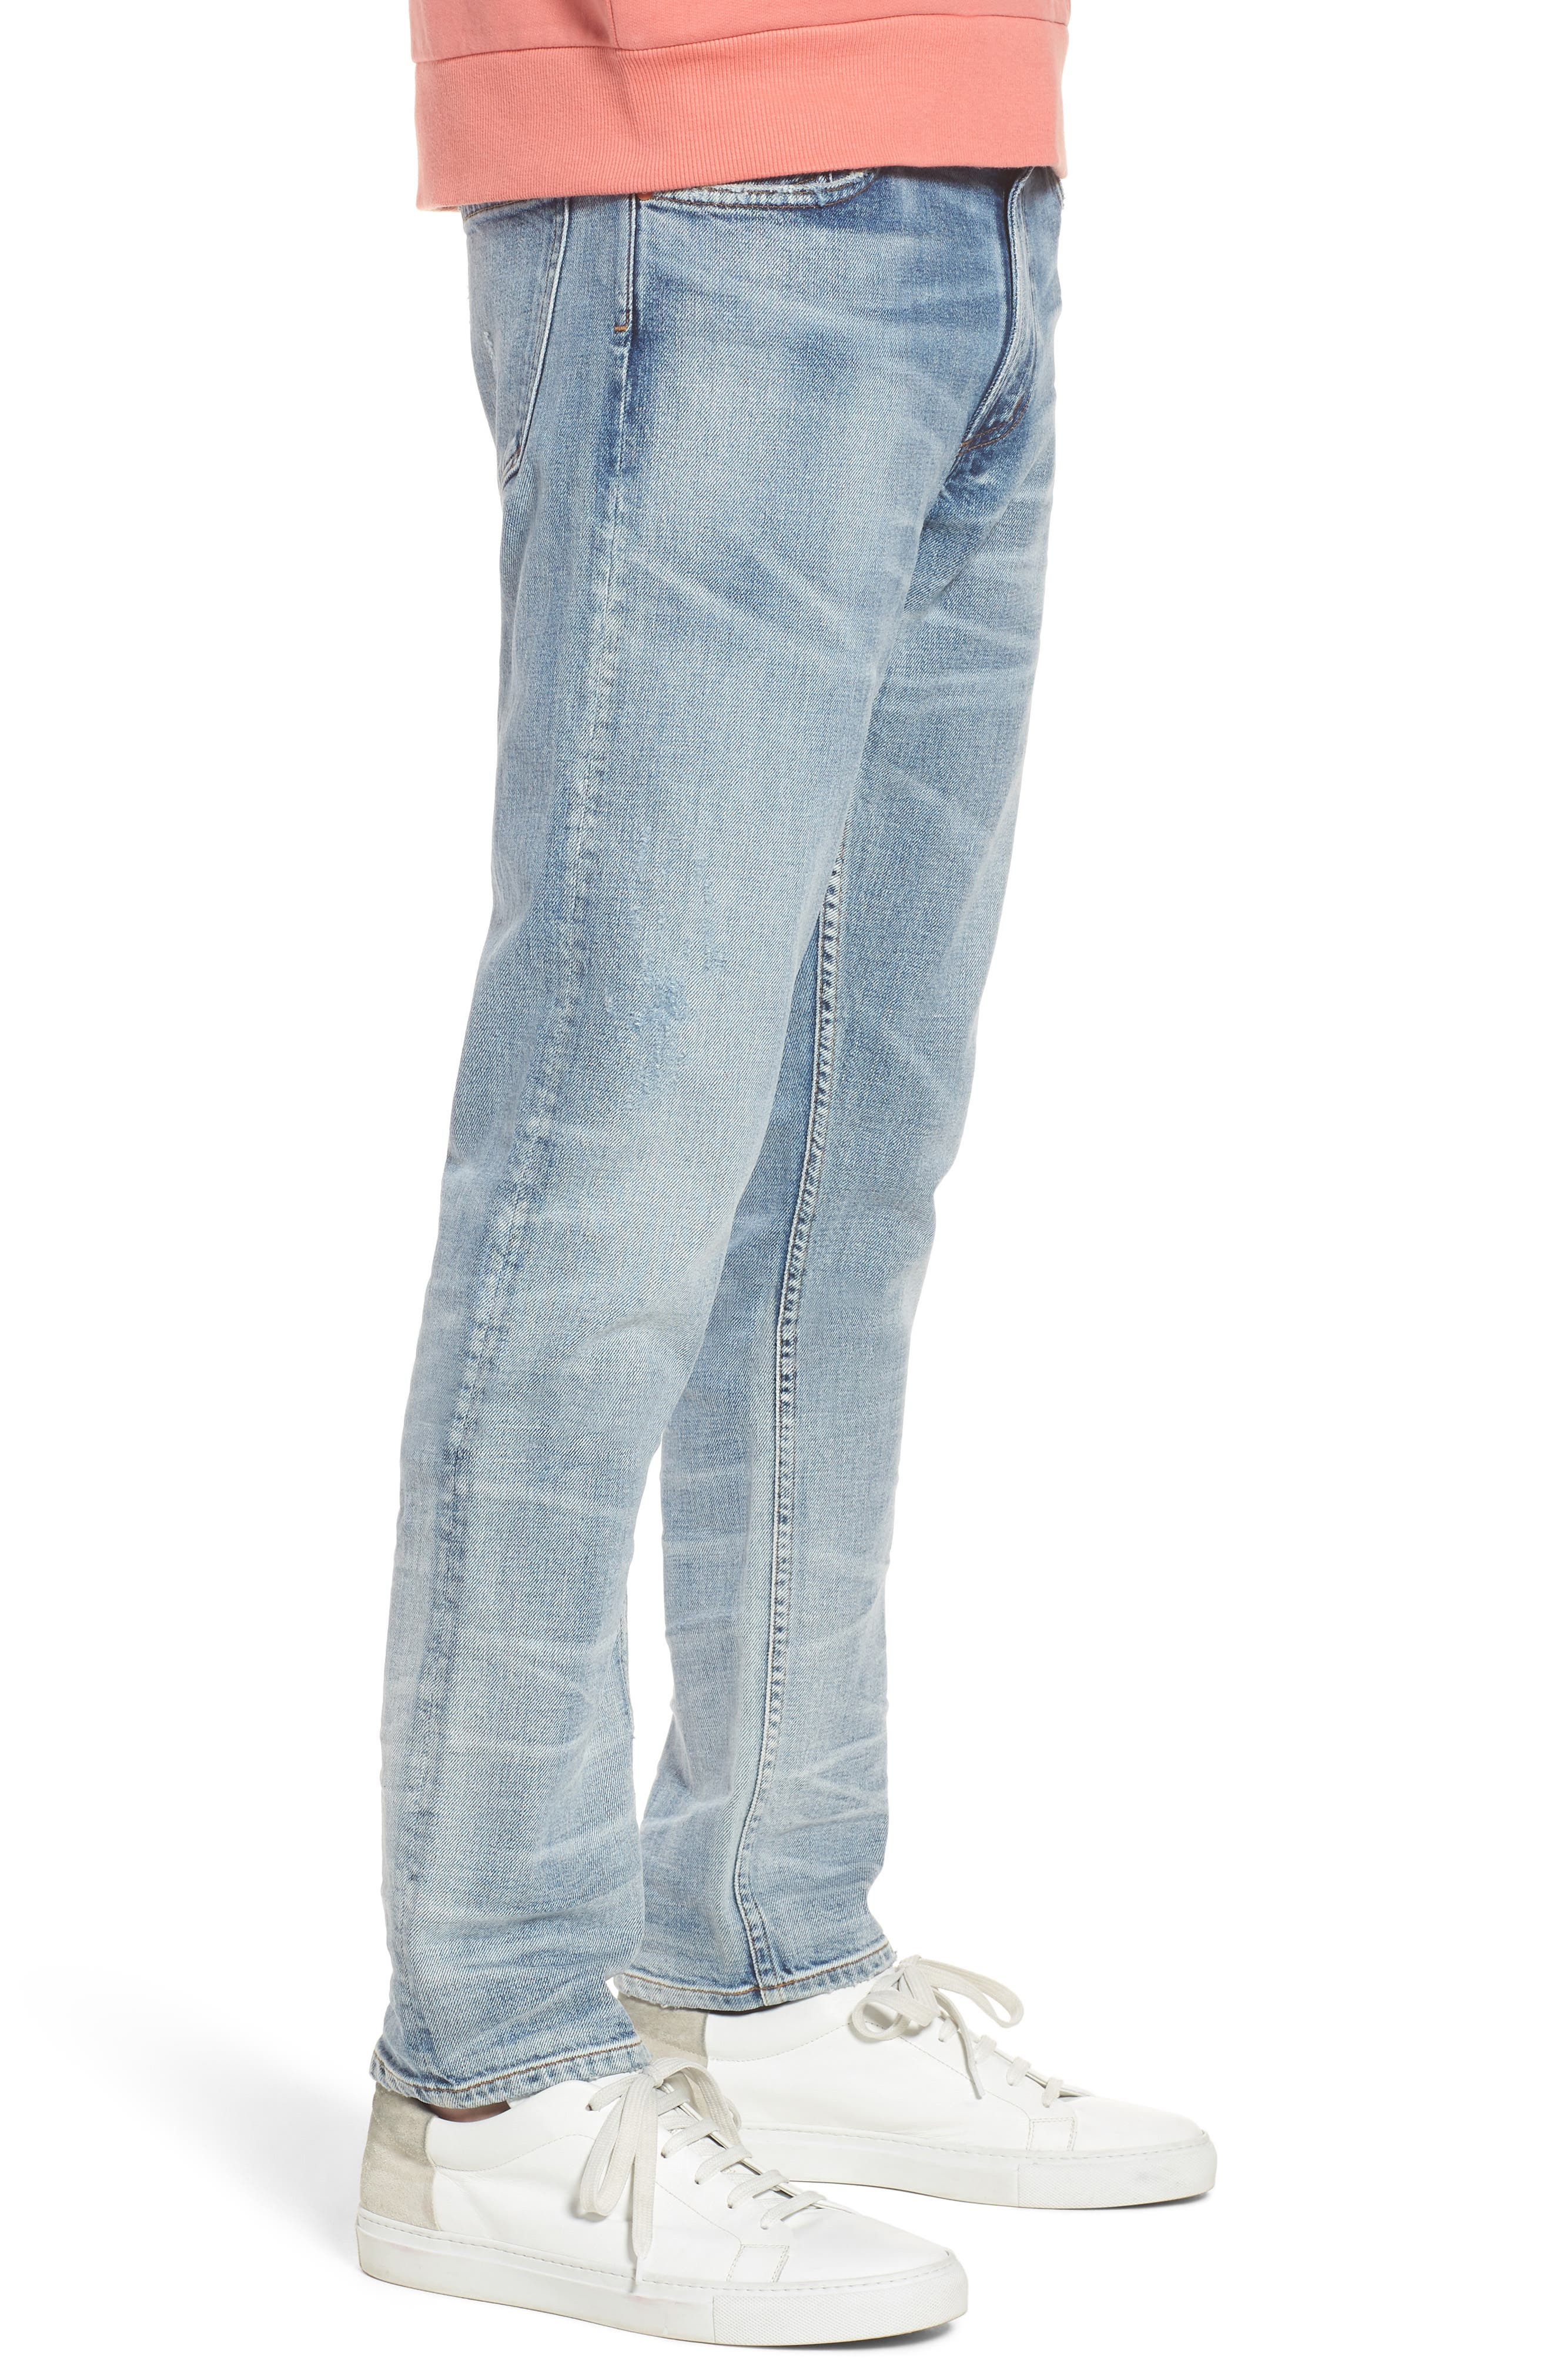 Bowery Slim Fit Jeans,                             Alternate thumbnail 3, color,                             Lone Pine